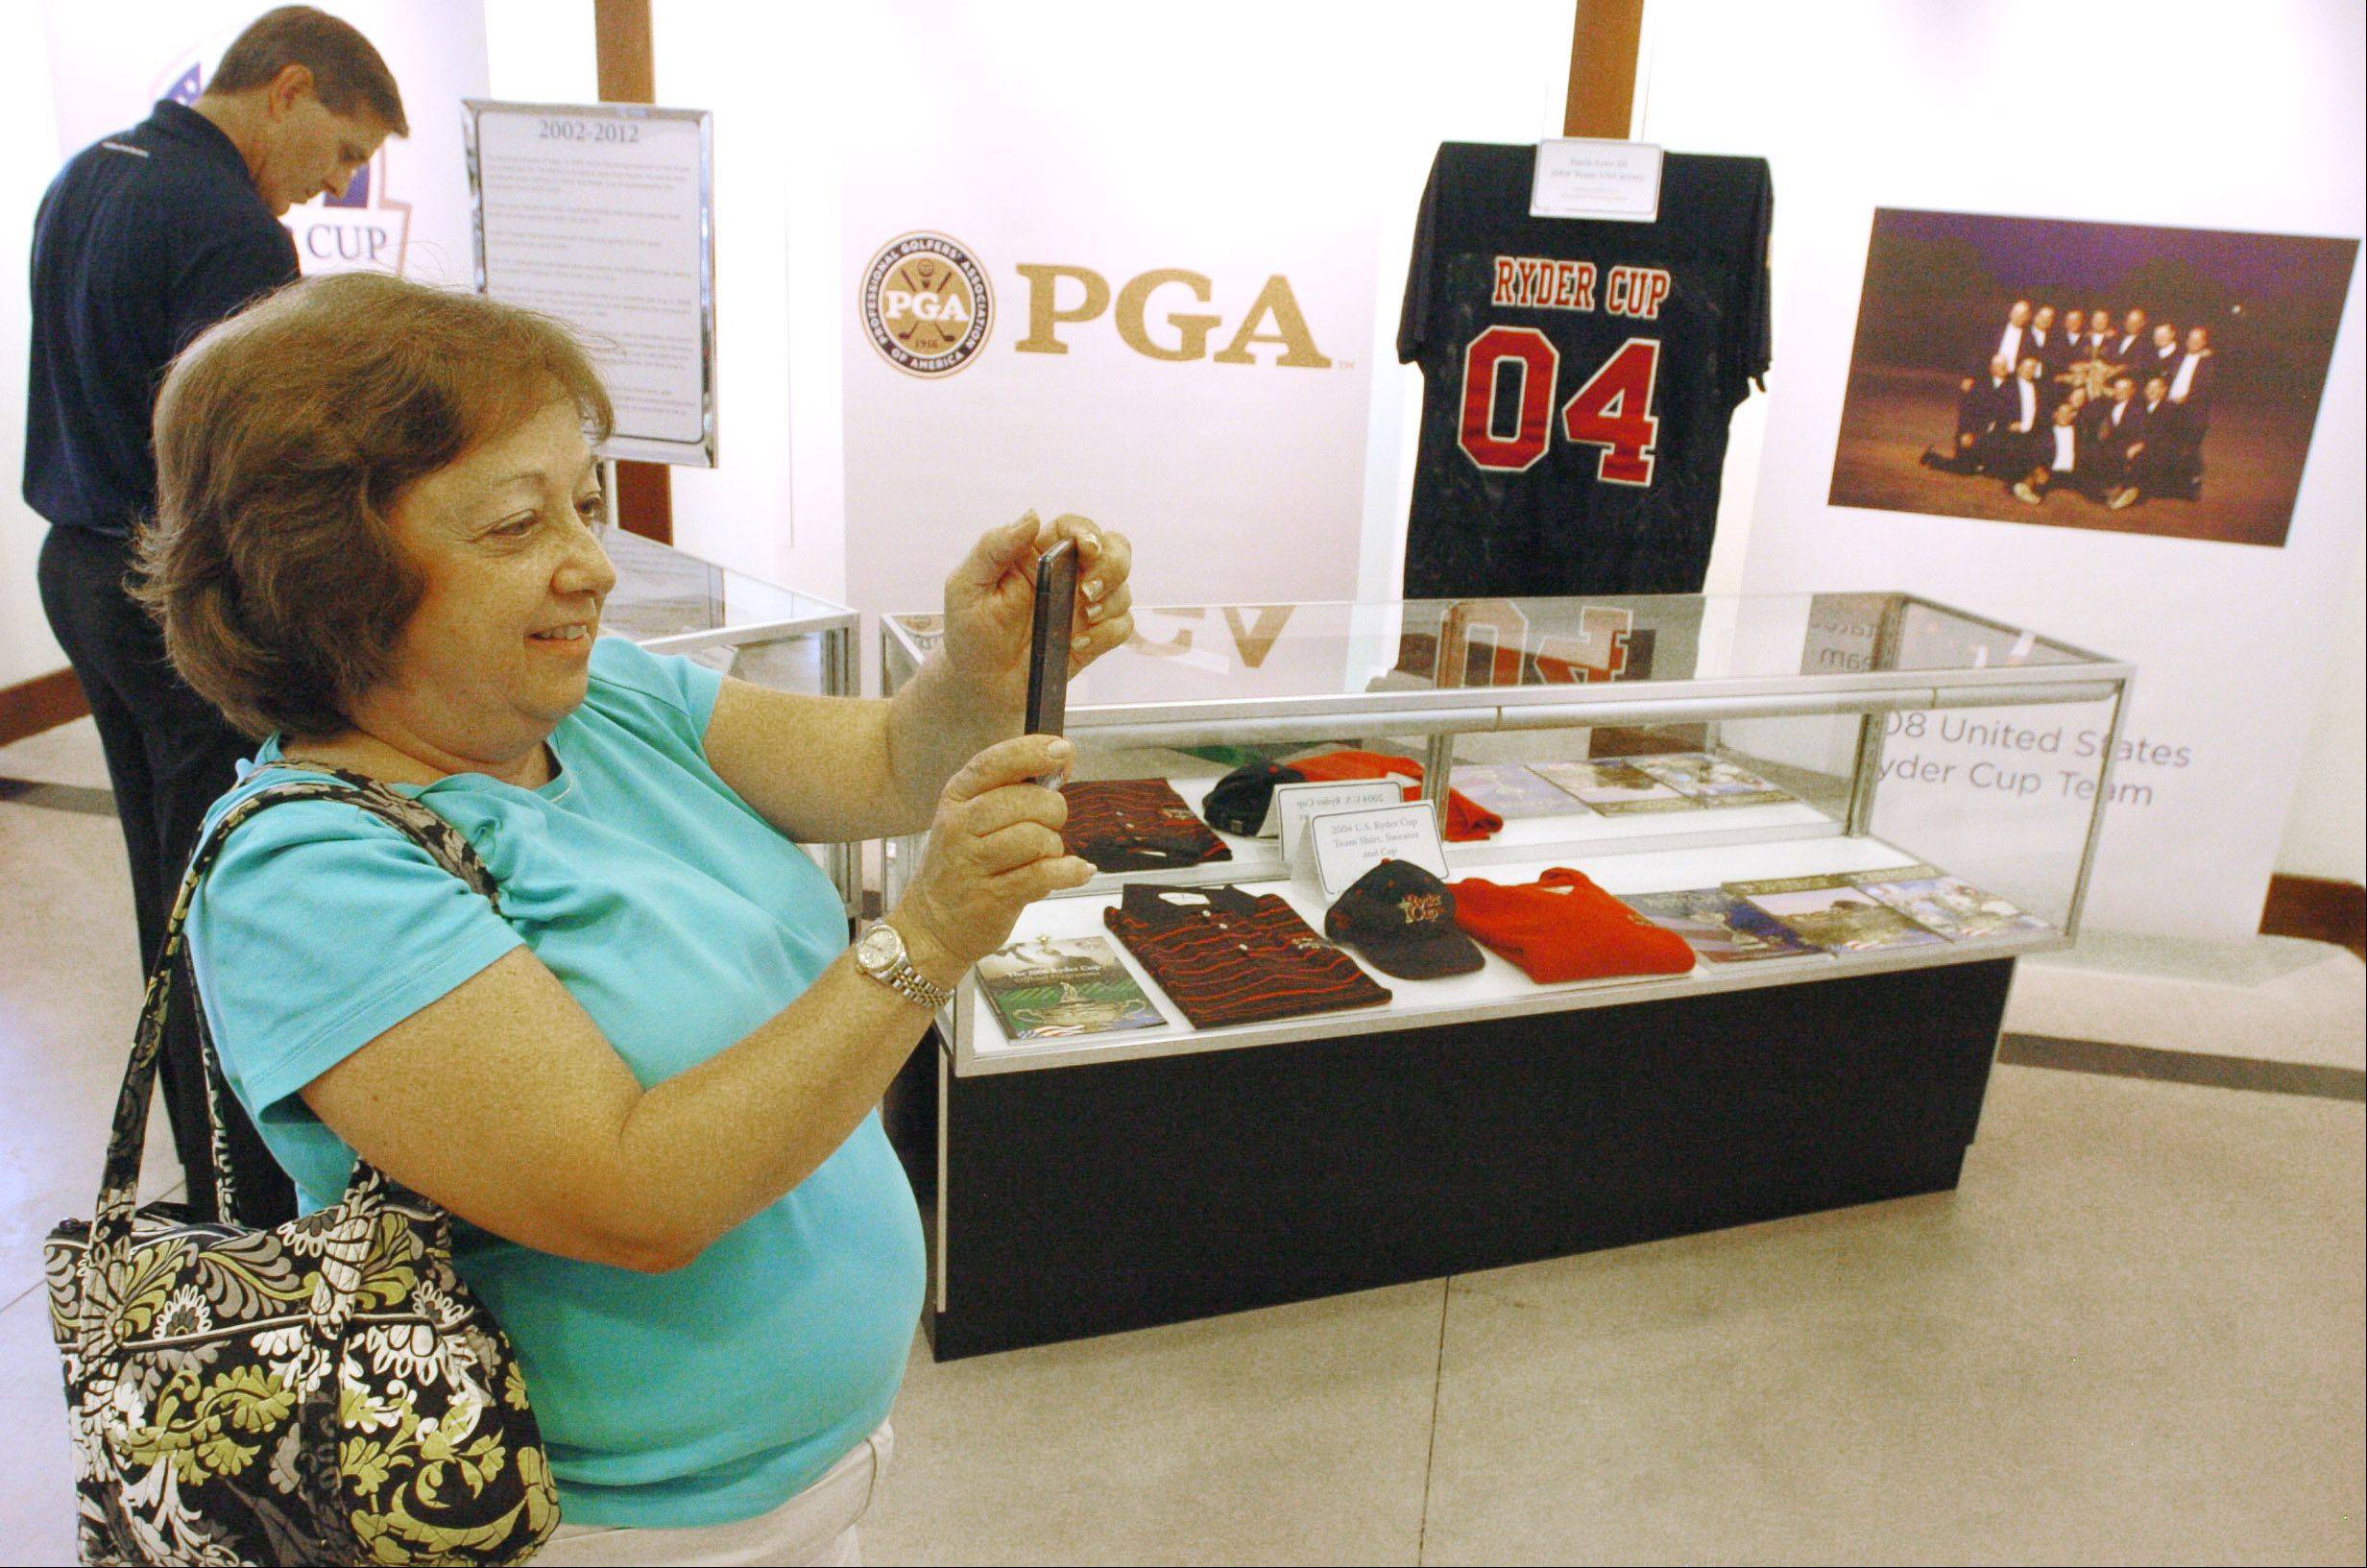 Mary Ann Bolster of Villa Park makes a picture of memorabilia on display.